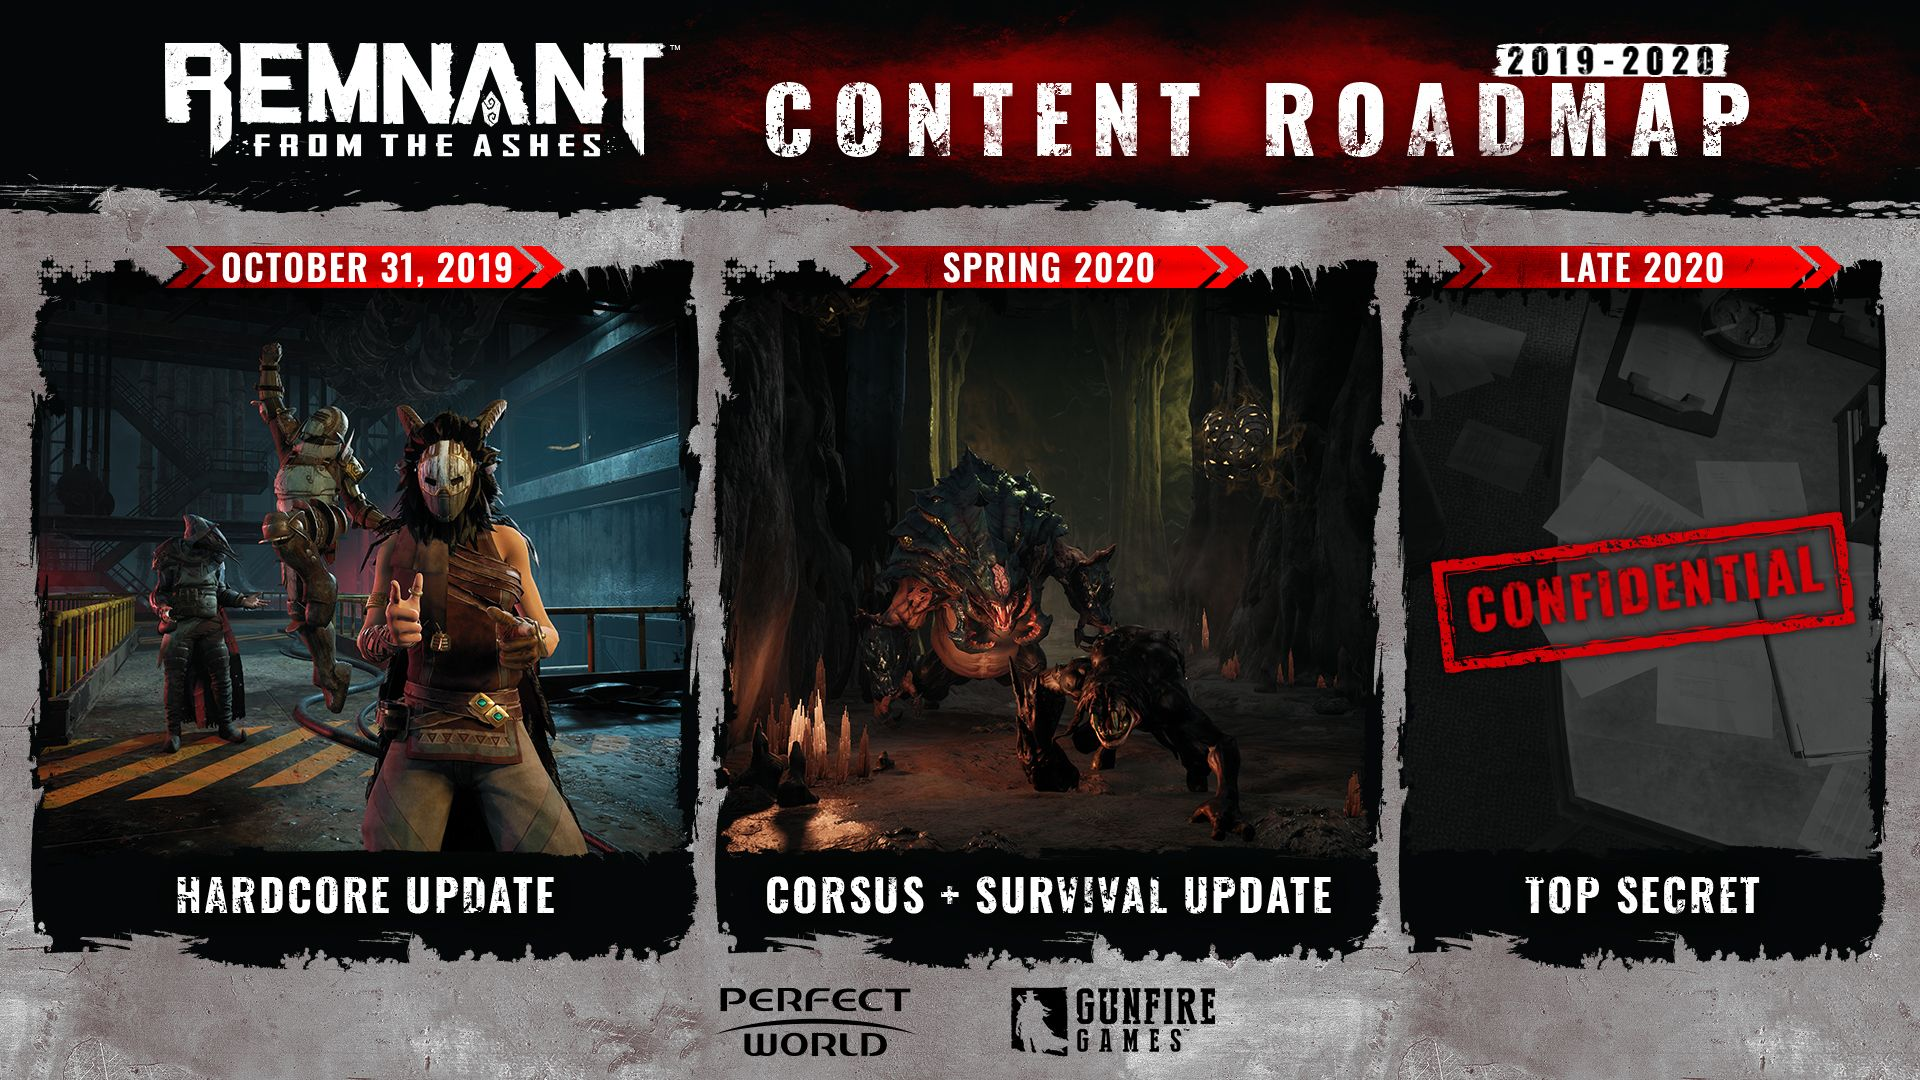 Remnant From the Ashes contnet roadmap